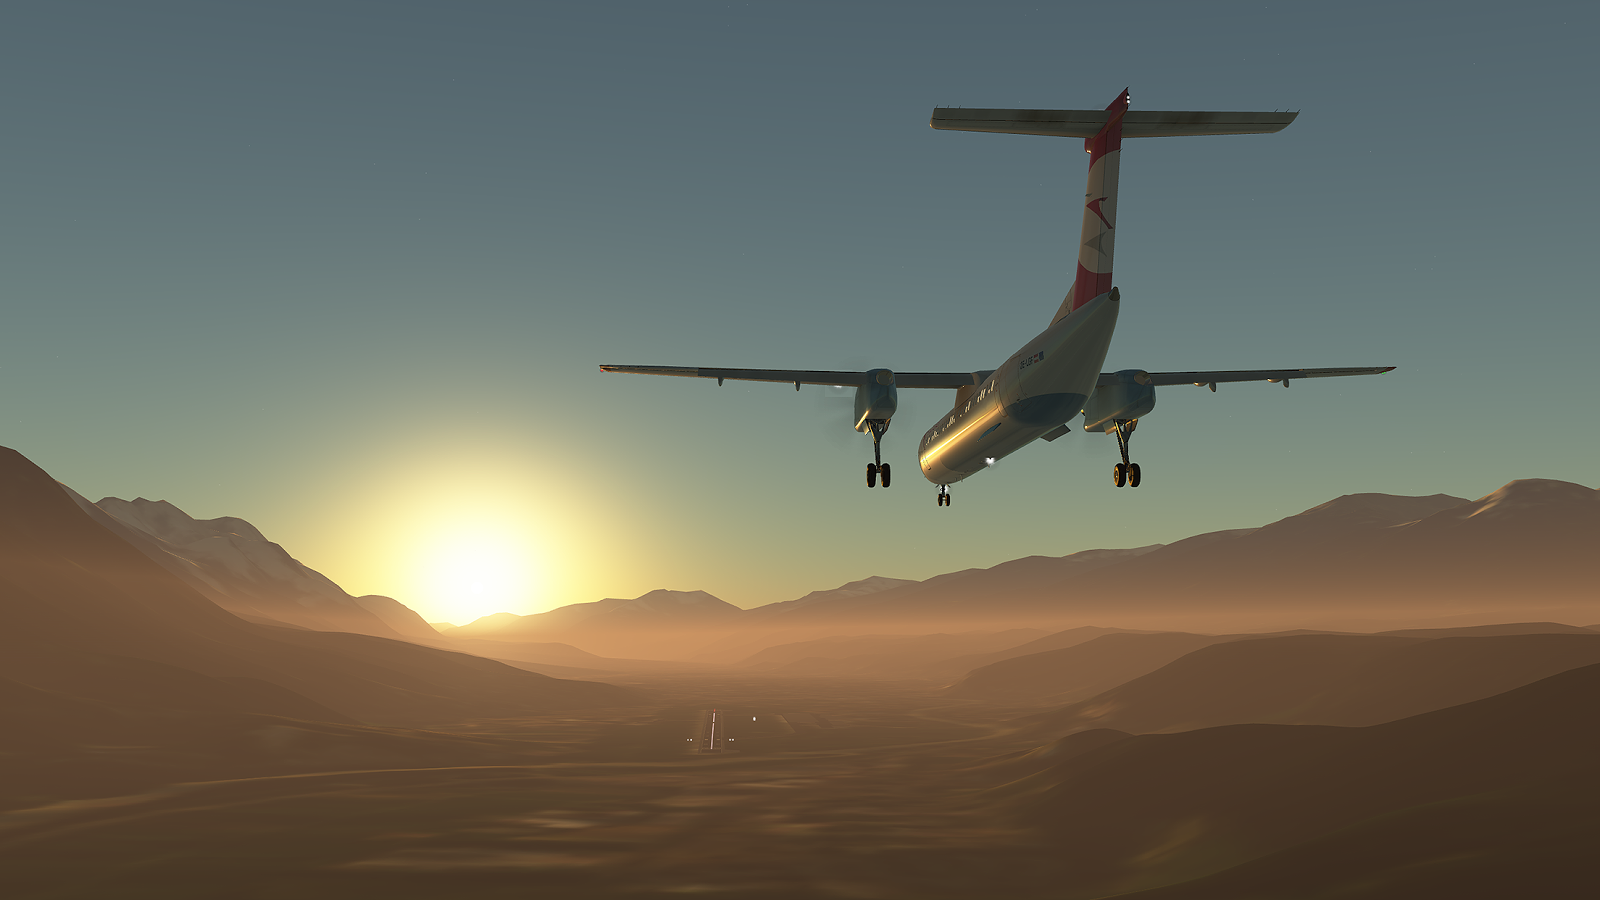 Infinite Flight - Flight Simulator Screenshot 11